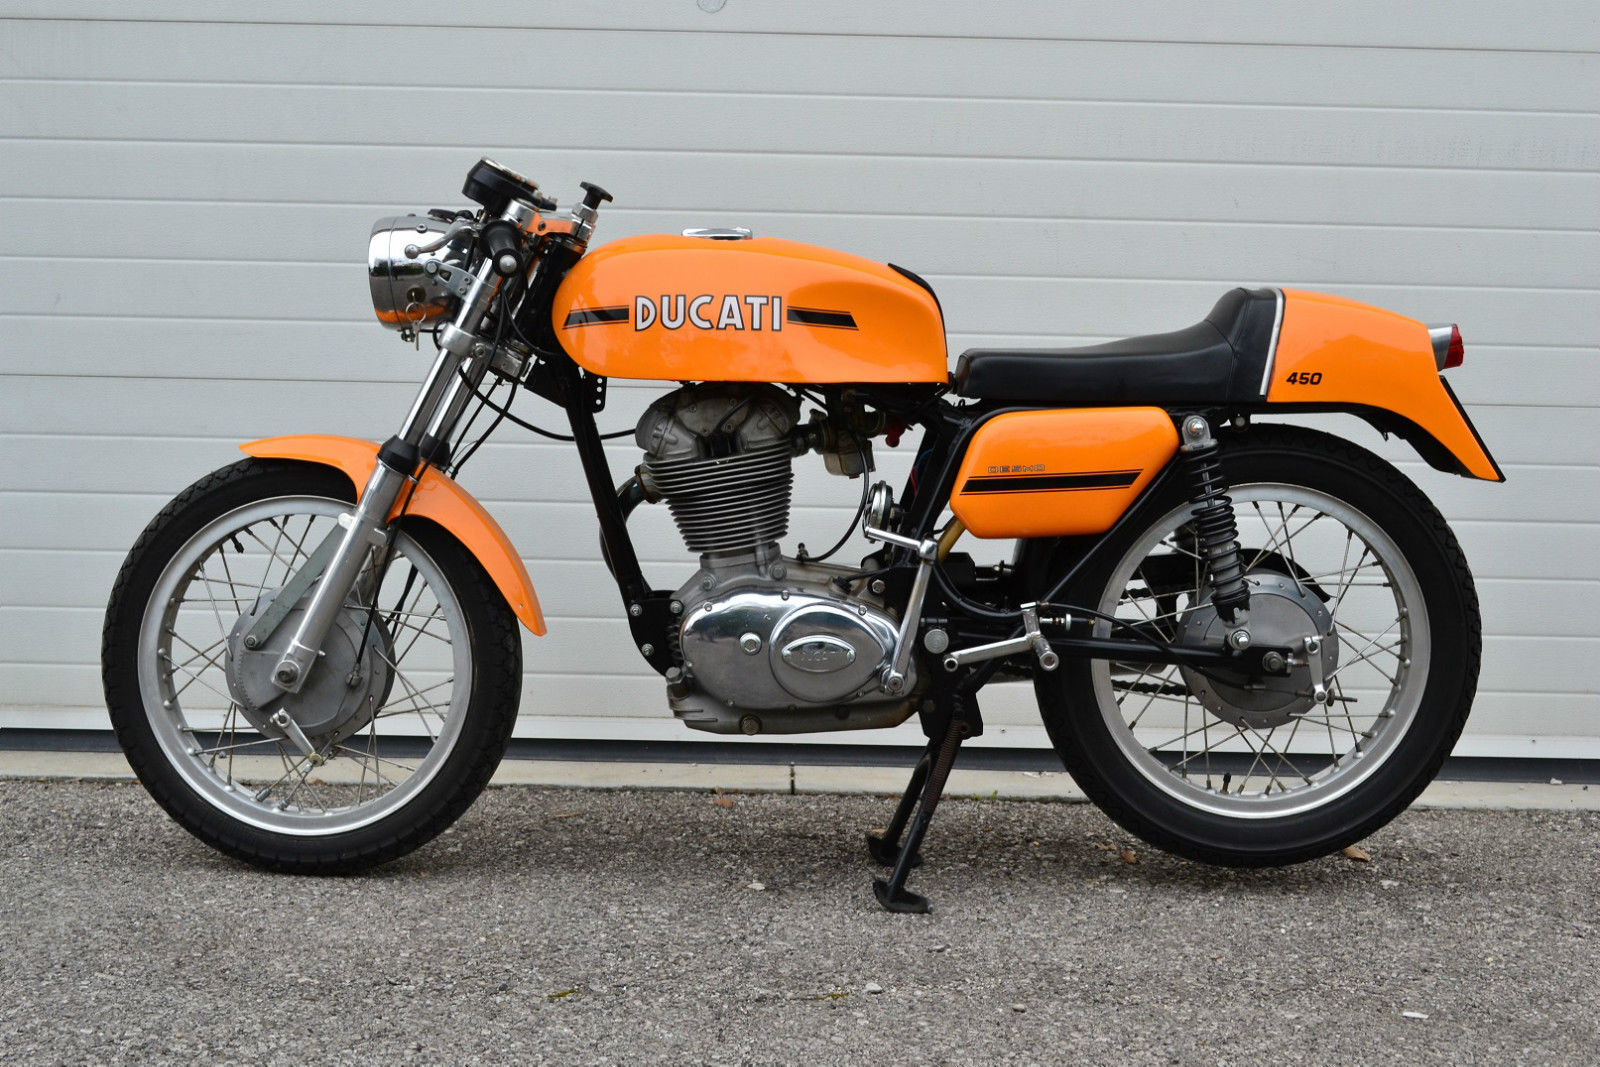 Ducati 350 Mark 3 1973 images #10256